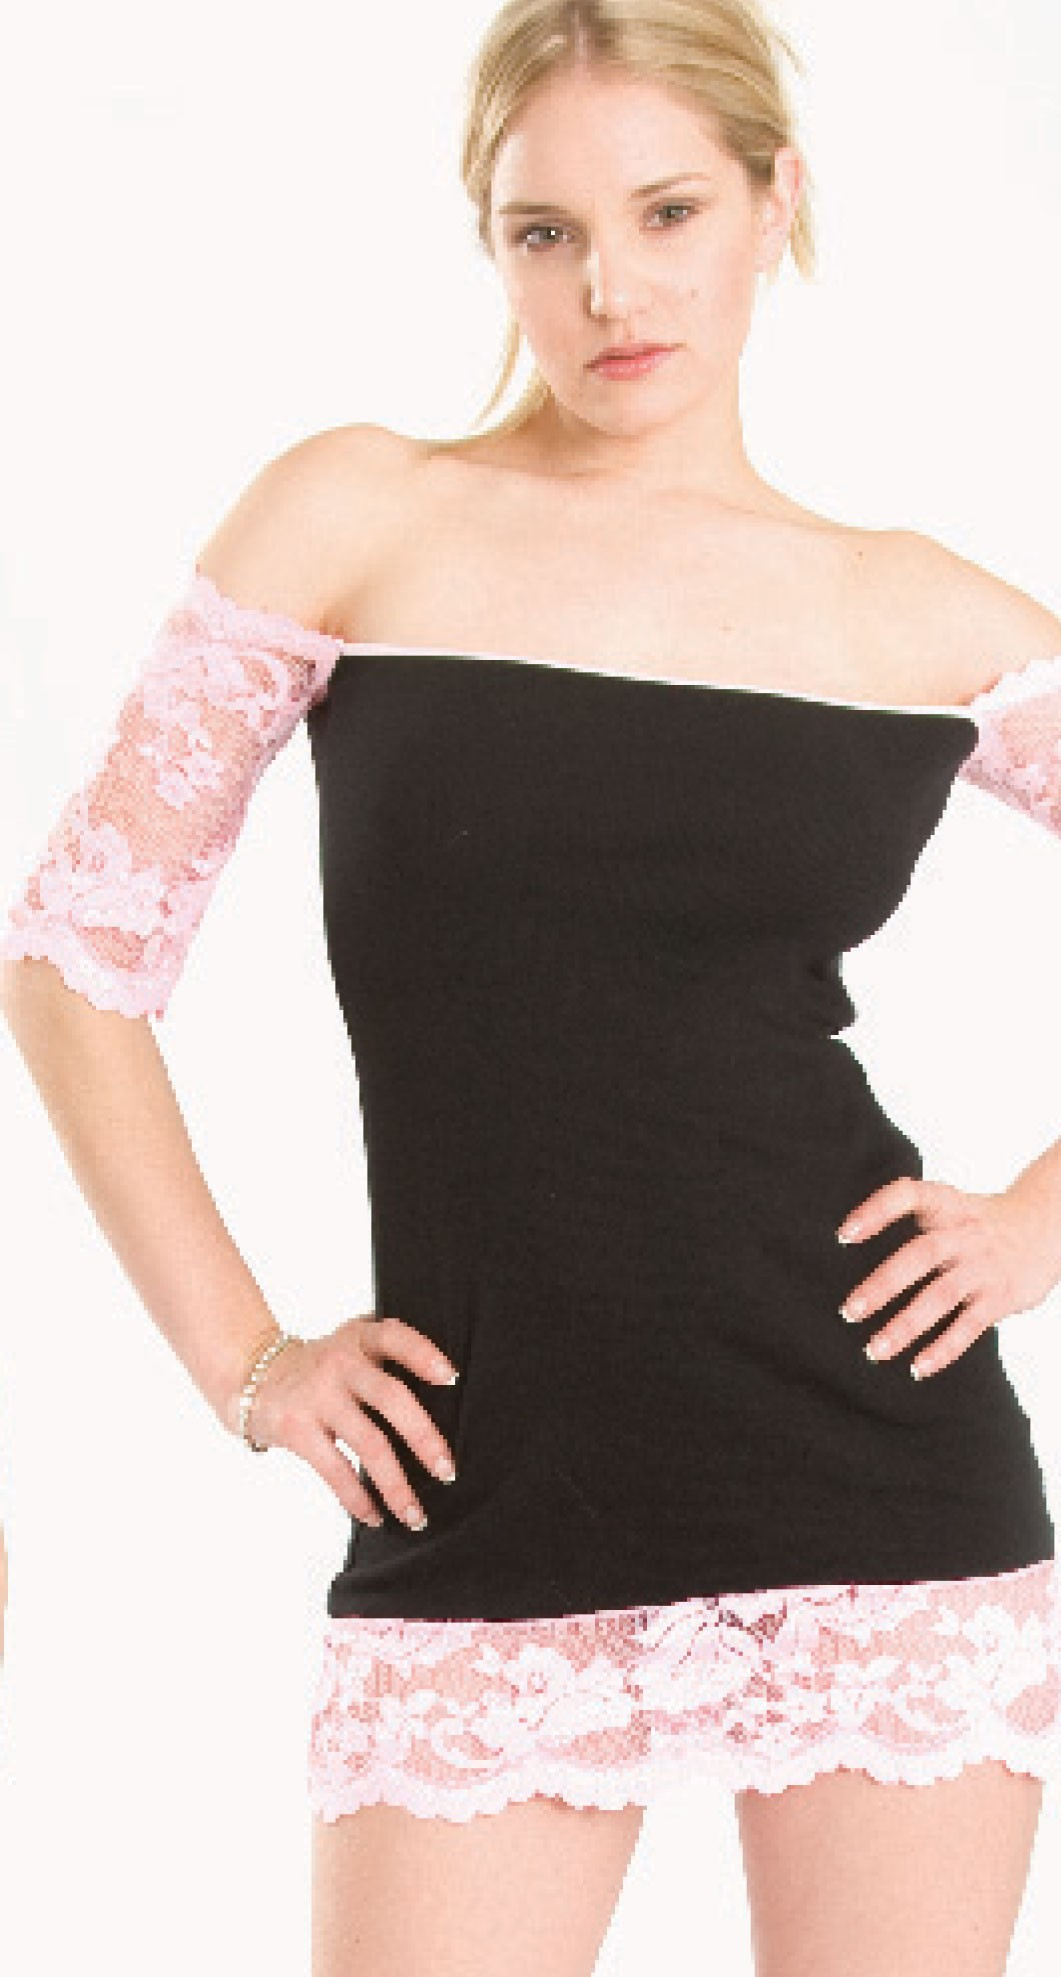 RK-D3 Rib knit dress with lace trip on bottom and lace drop sleeves.  Trimmed in pink.